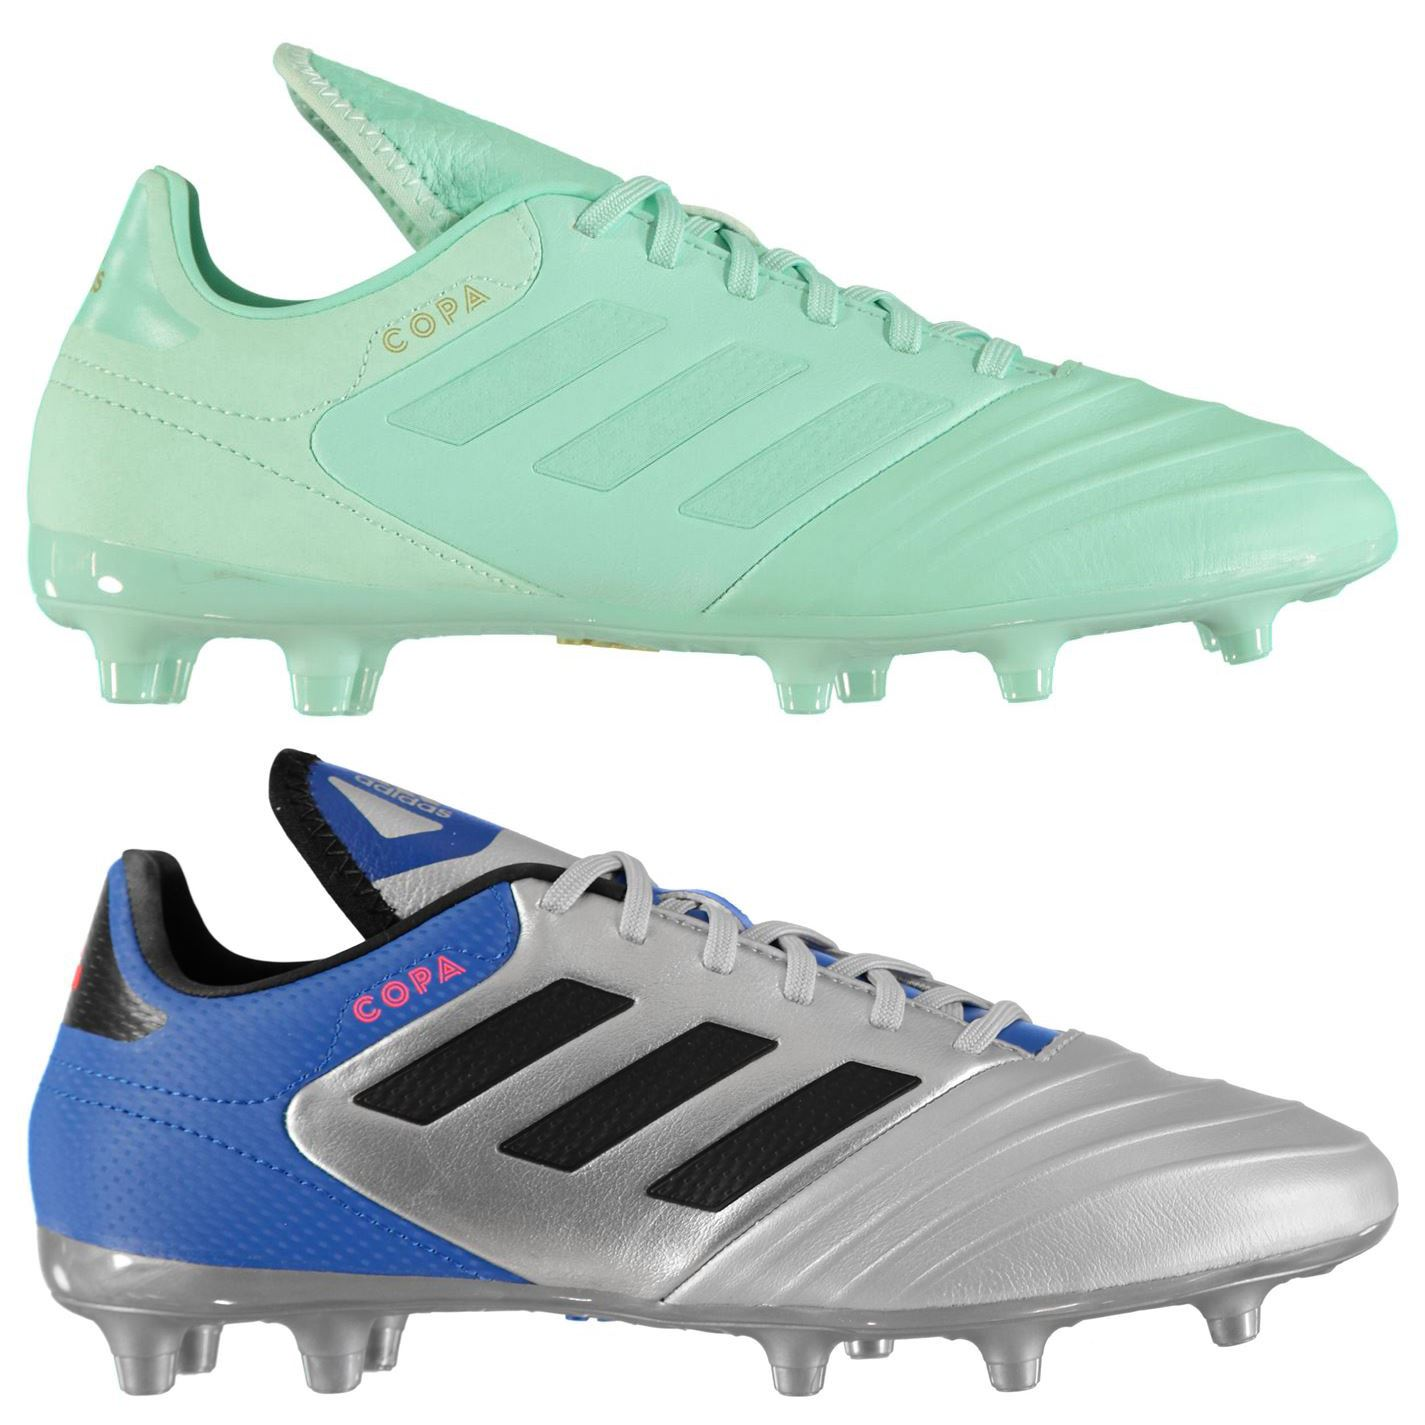 adidas Copa 18.3 FG Firm Ground Football Boots Mens Soccer Shoes Cleats c55f4d9b2